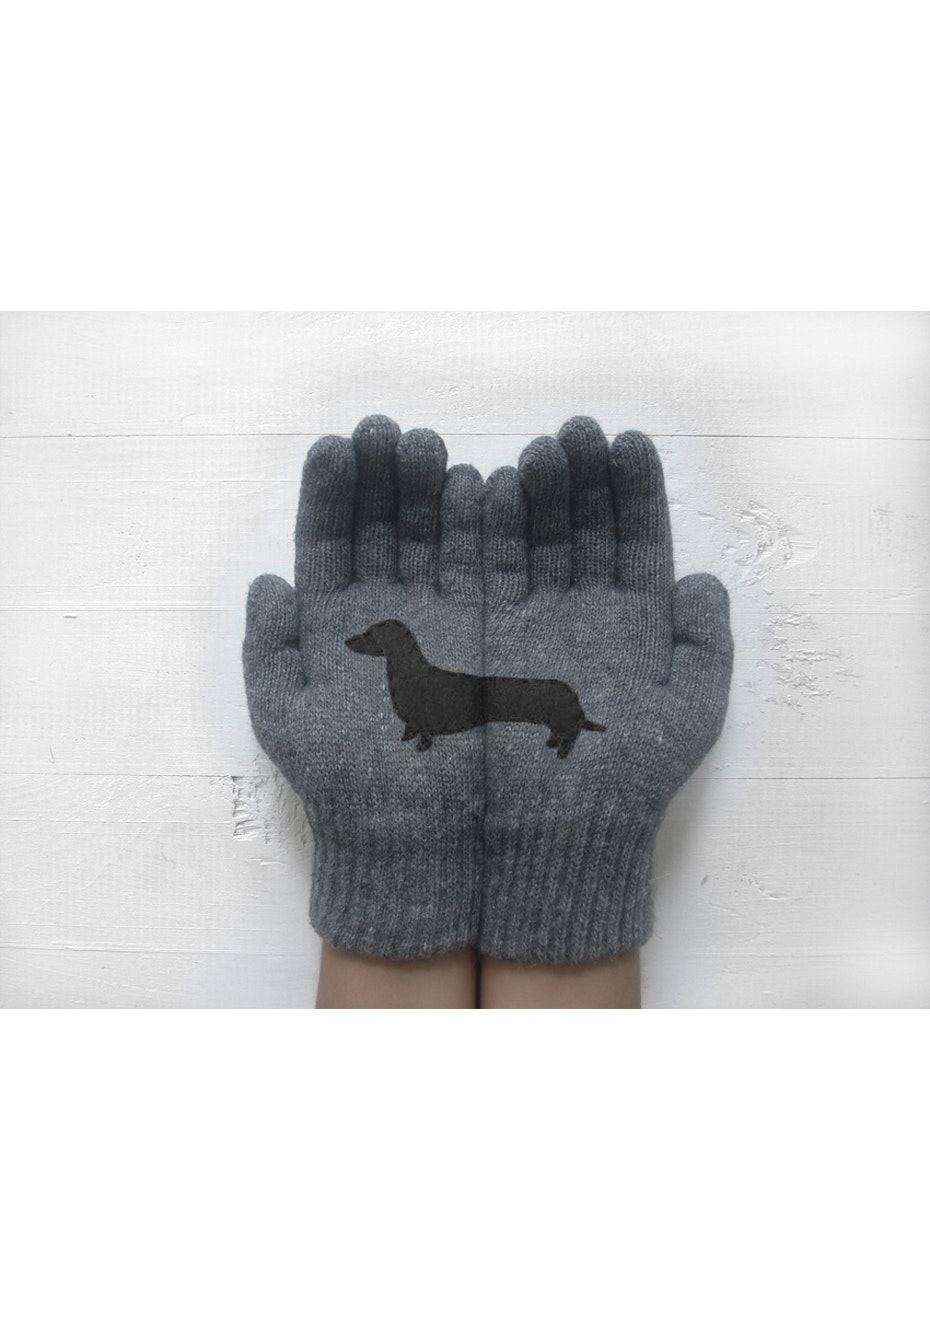 Dachshund Gloves - Grey/Black